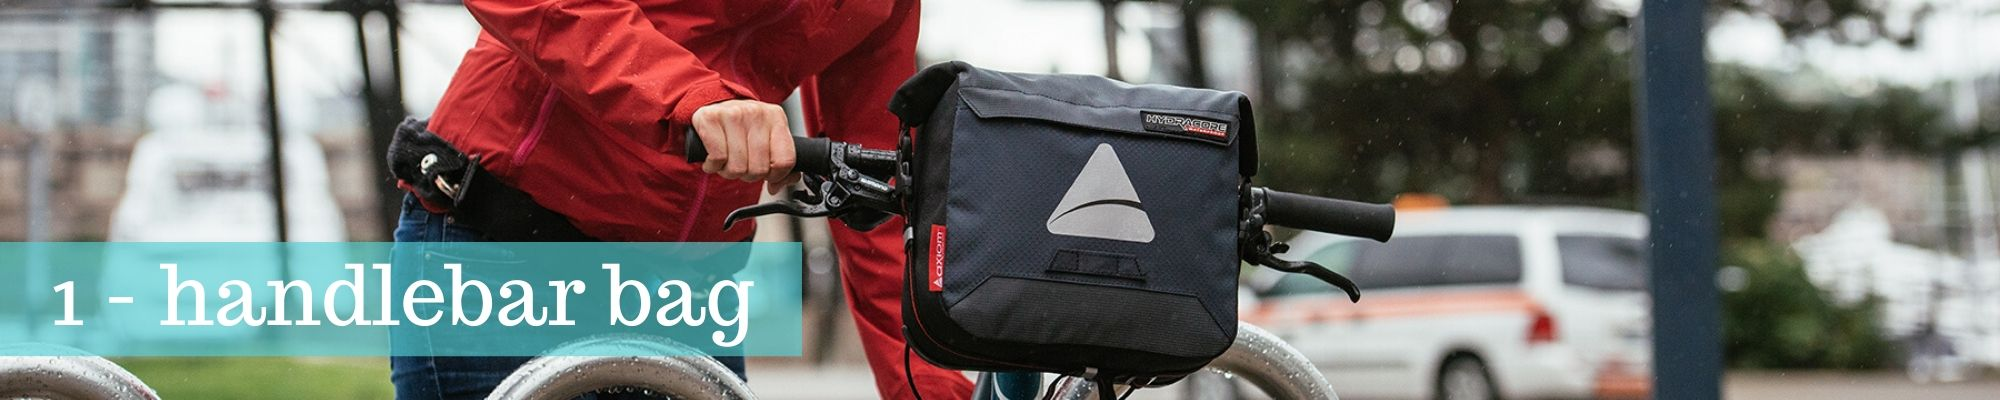 bike gifts 1 - handlebar bags